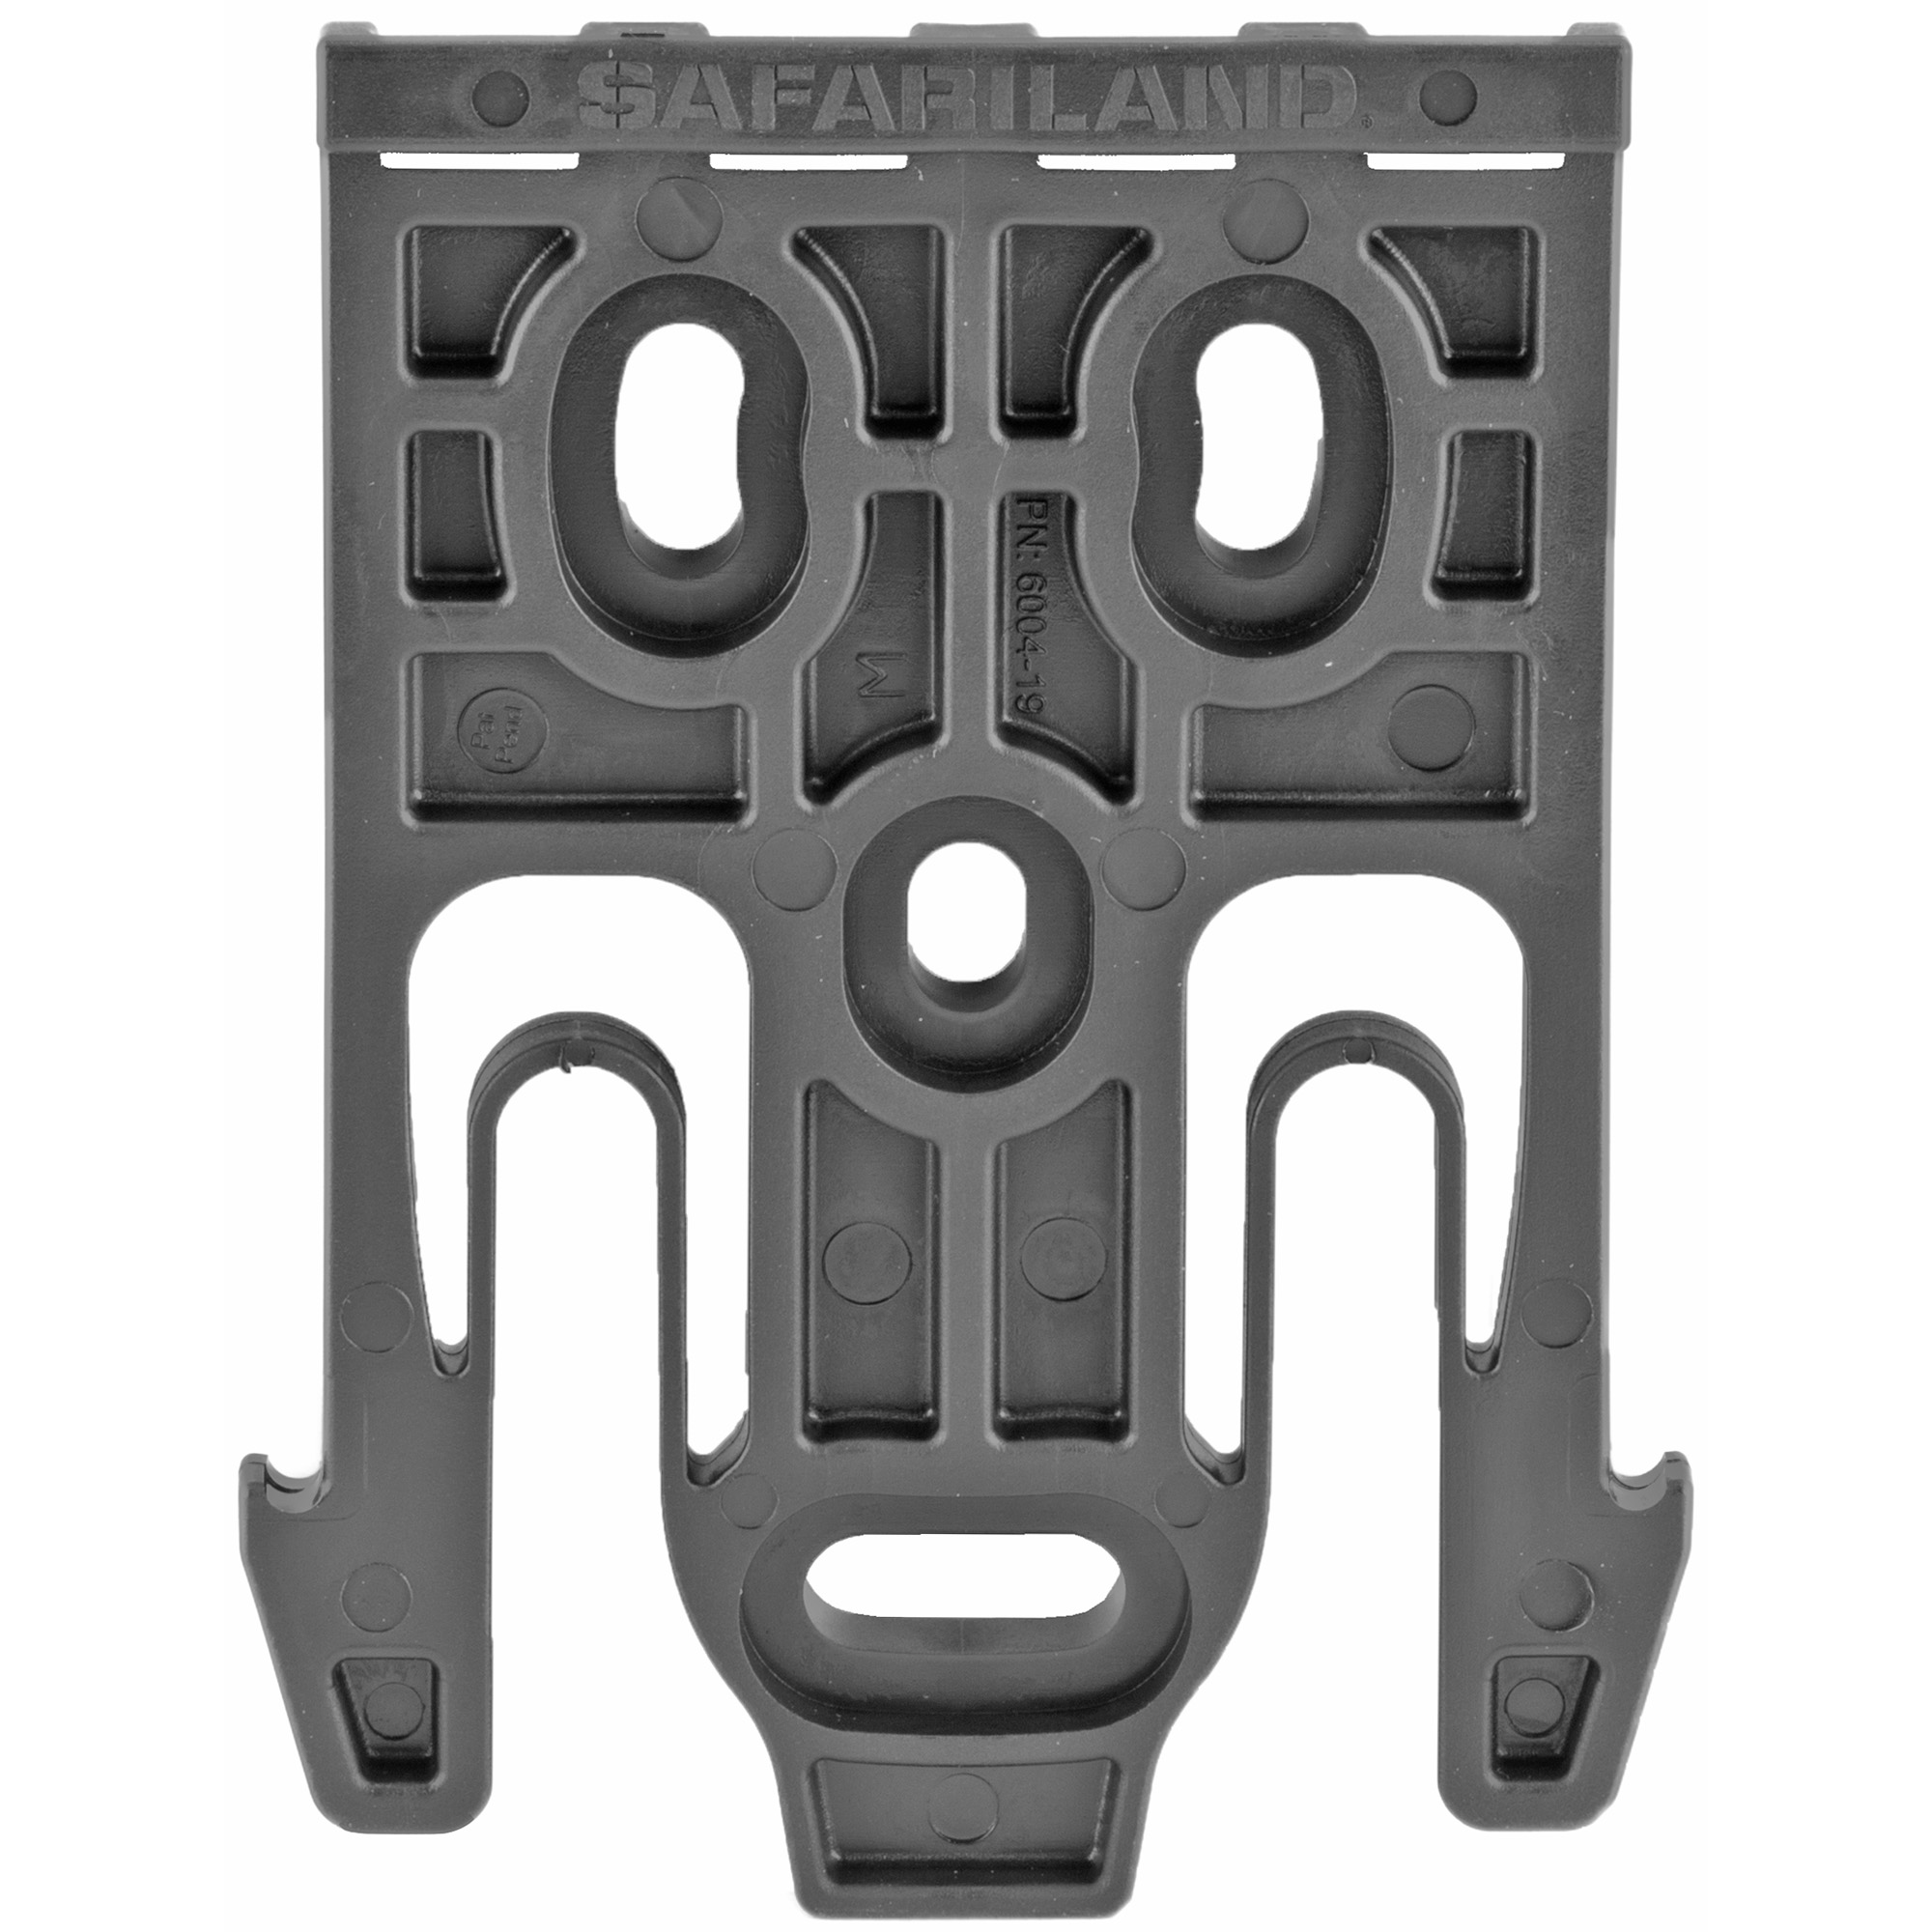 "The QLS 19 Locking Fork mounts directly to the back of any Safariland(R) 2-hole pattern pouch or 3-hole pattern holster. The combination can then be connected to either the QLS 22 or QLS 22L Receiver Plate. Use with either of these receiver plates allows for quick transfer of holster between attachment points such as a belt loop"" tactical leg shroud or other stable mounting platform. The QLS fork and plate combination passes the Level I Retention(TM) pull test."